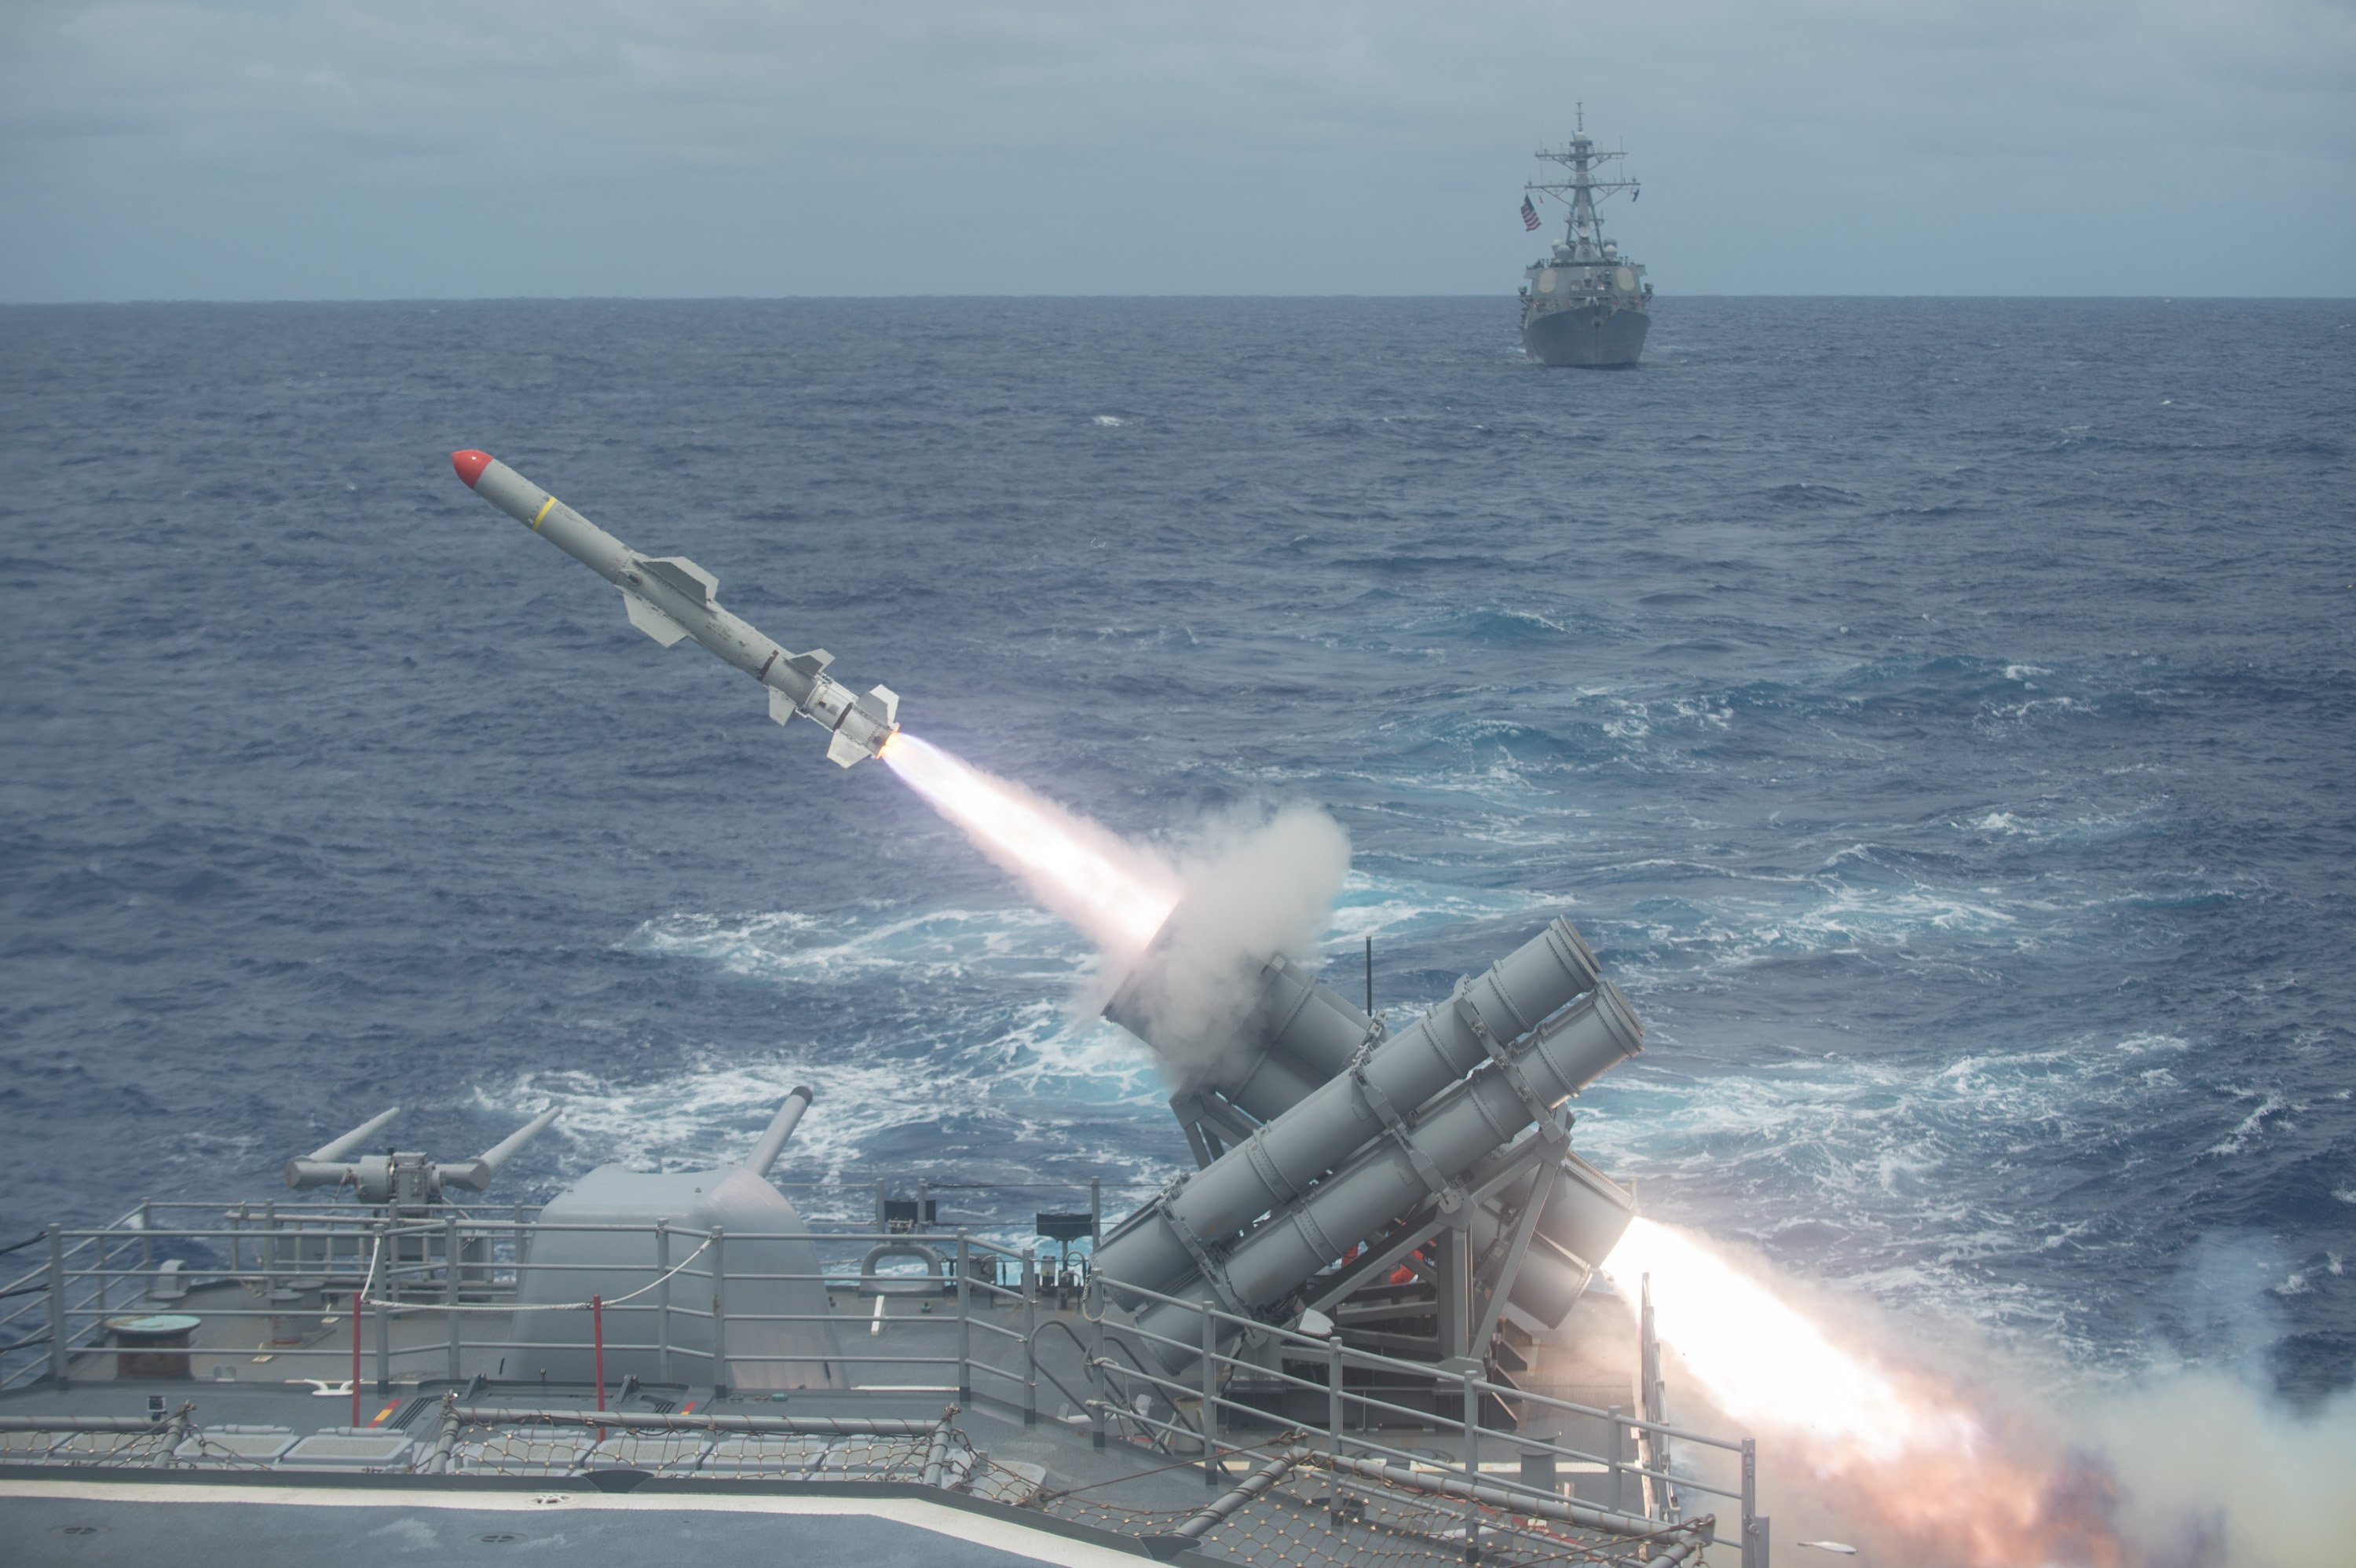 A Harpoon missile is launched from the Ticonderoga-class guided-missile cruiser USS Shiloh (CG-67) during a live-fire exercise on Sept. 15, 2014. US Navy Photo